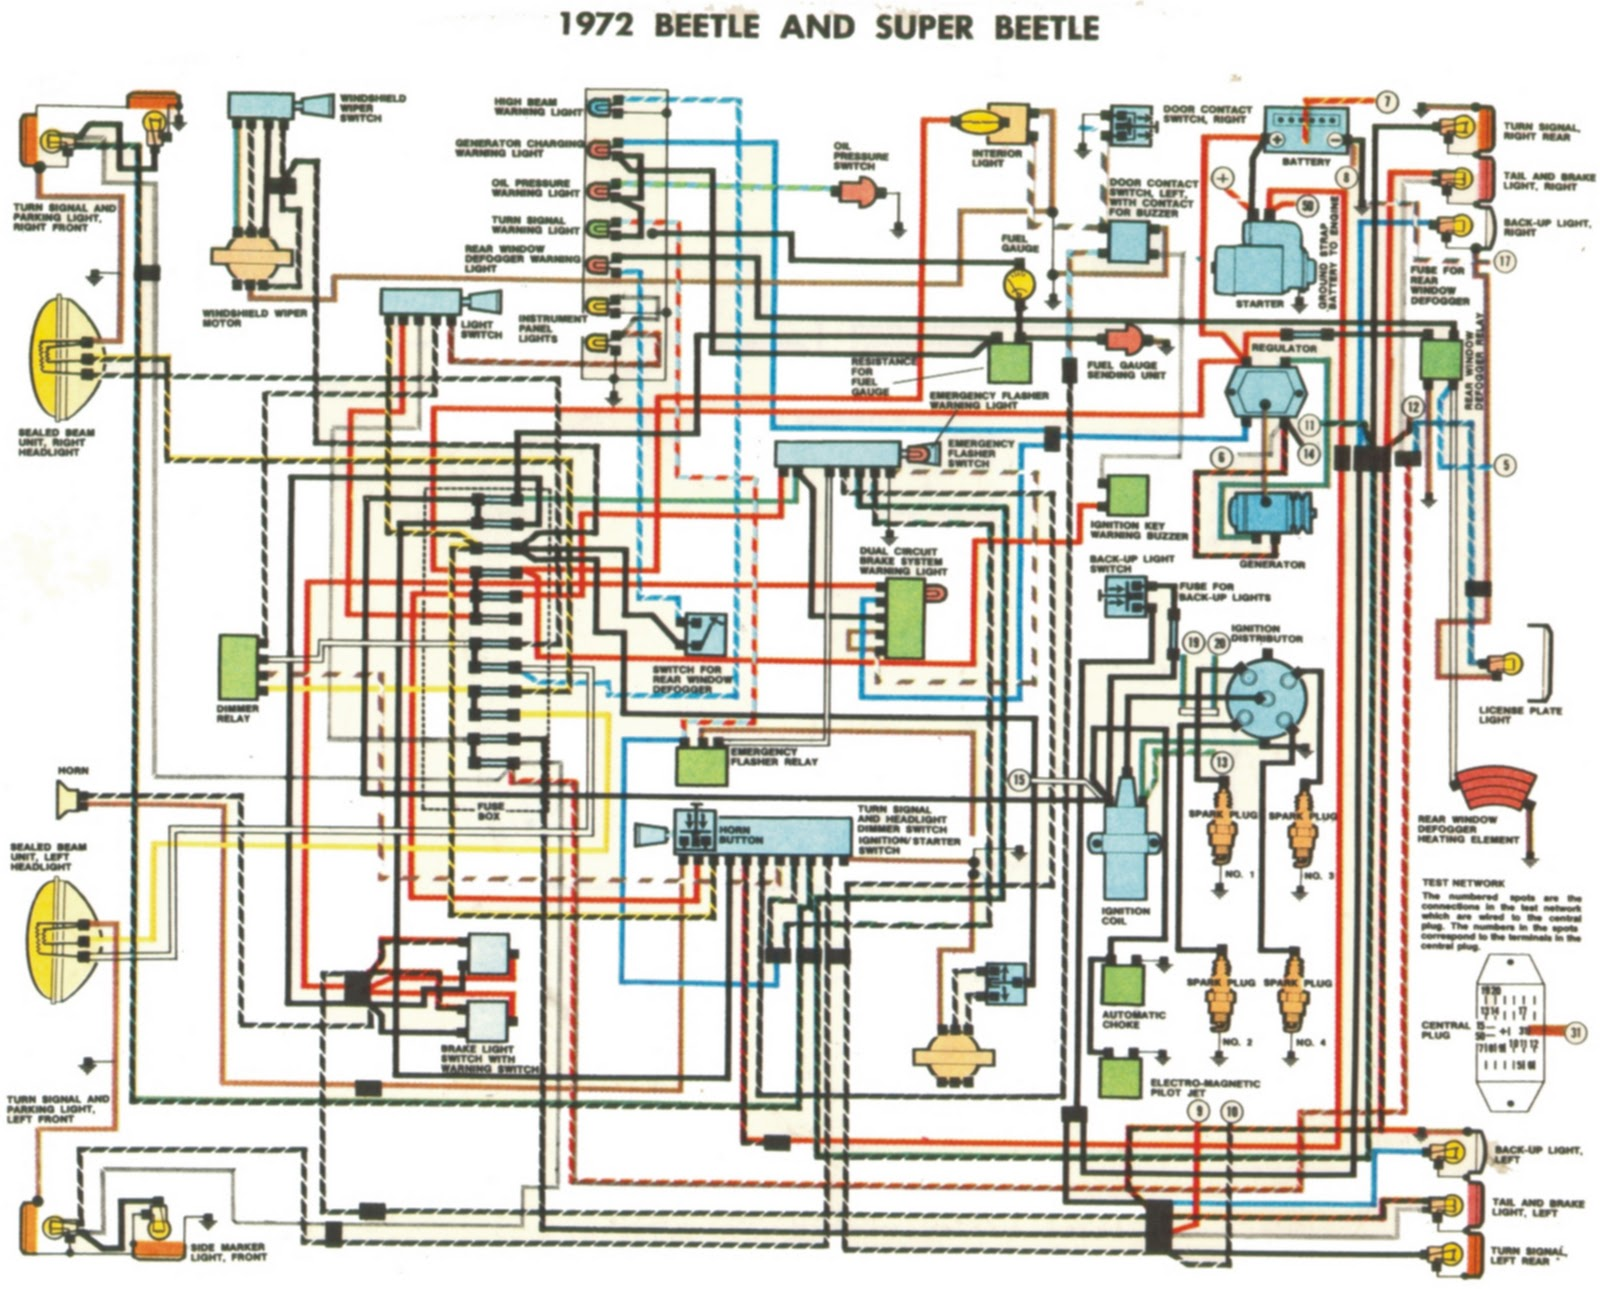 1972 beetle and super beetle wiring diagrams wiring diagram for 1971 vw beetle readingrat net 1972 volkswagen super beetle wiring harness at mifinder.co